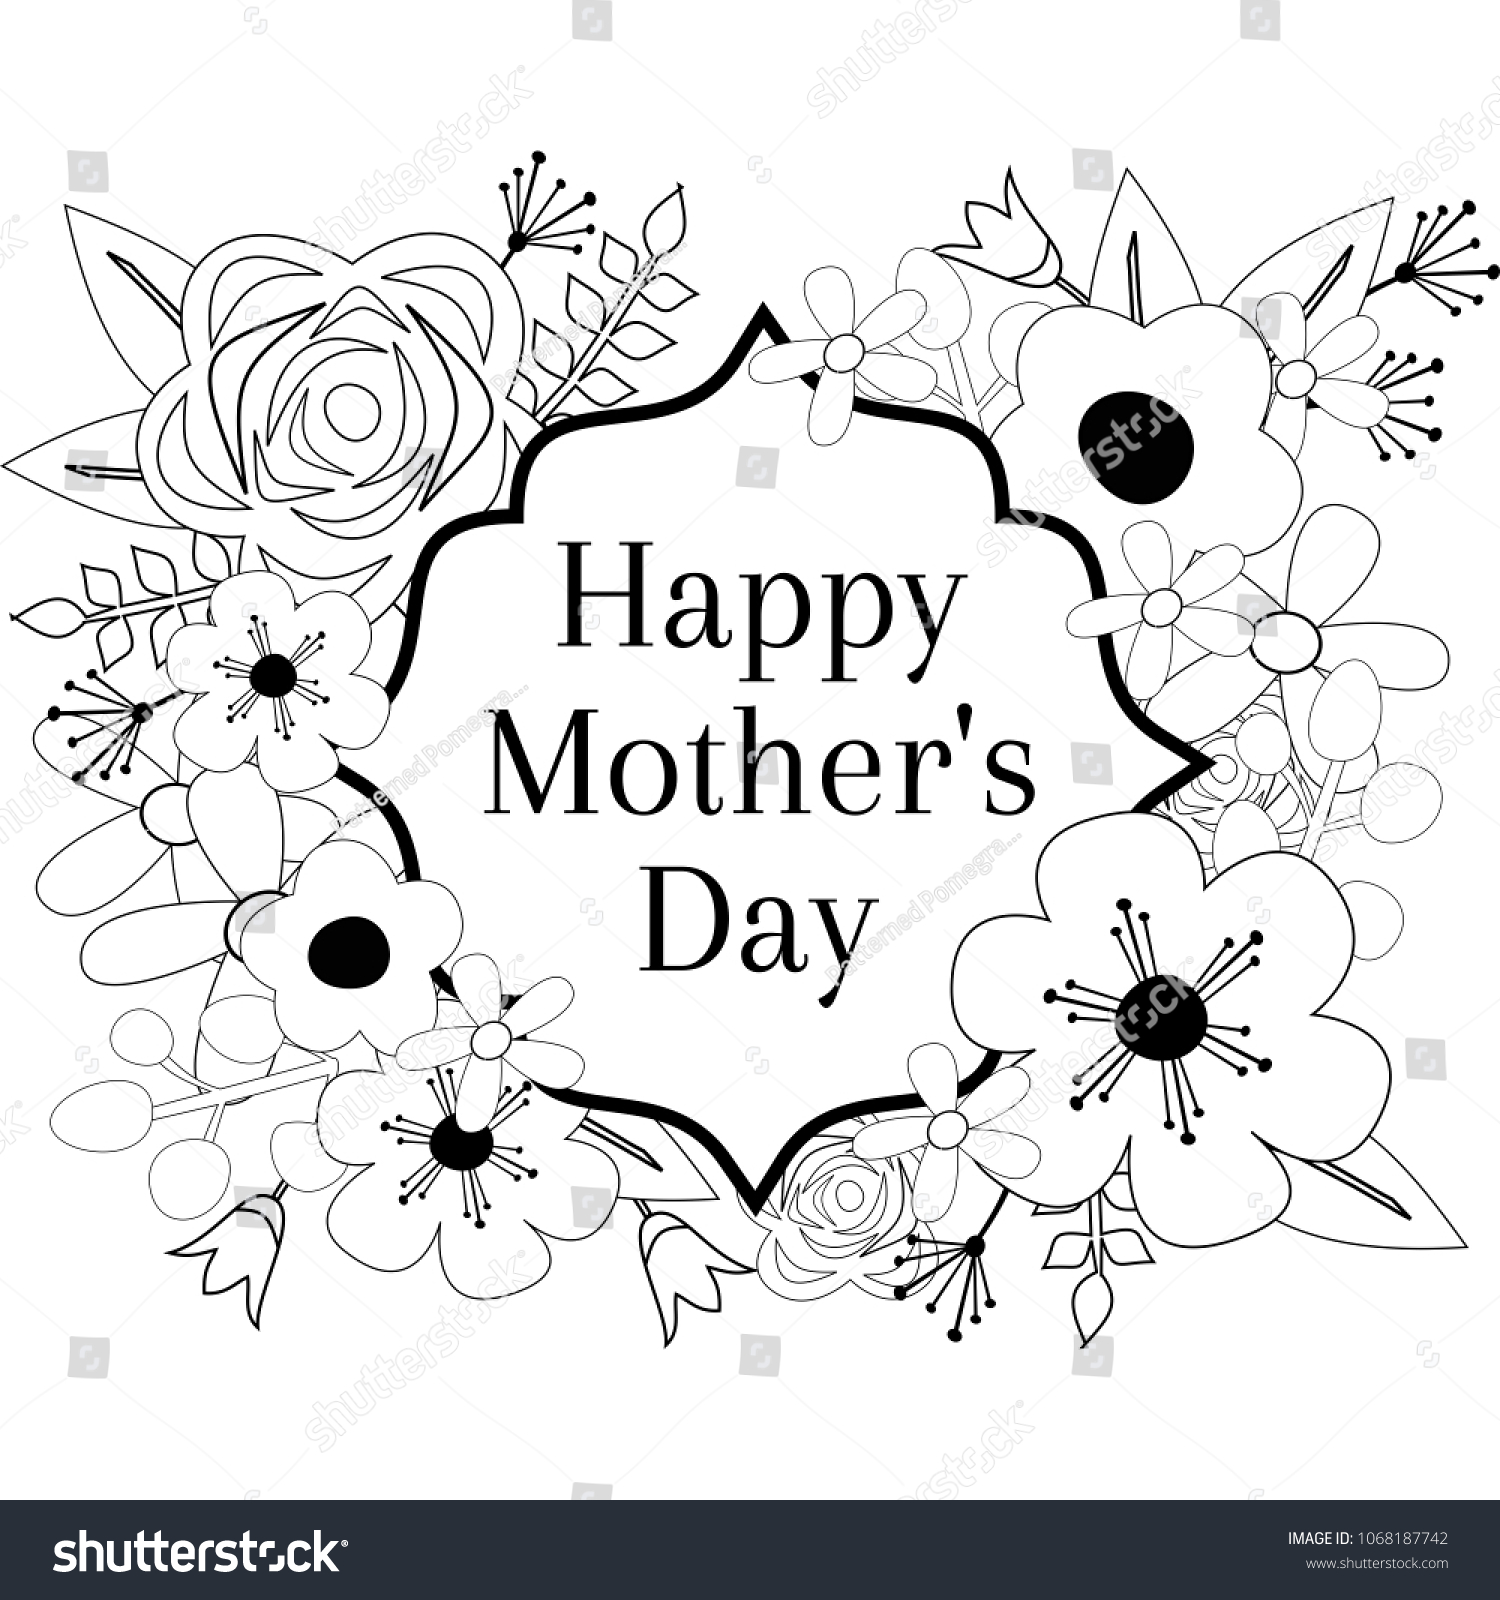 happy mothers day coloring page outline vector graphic floral frame greeting card